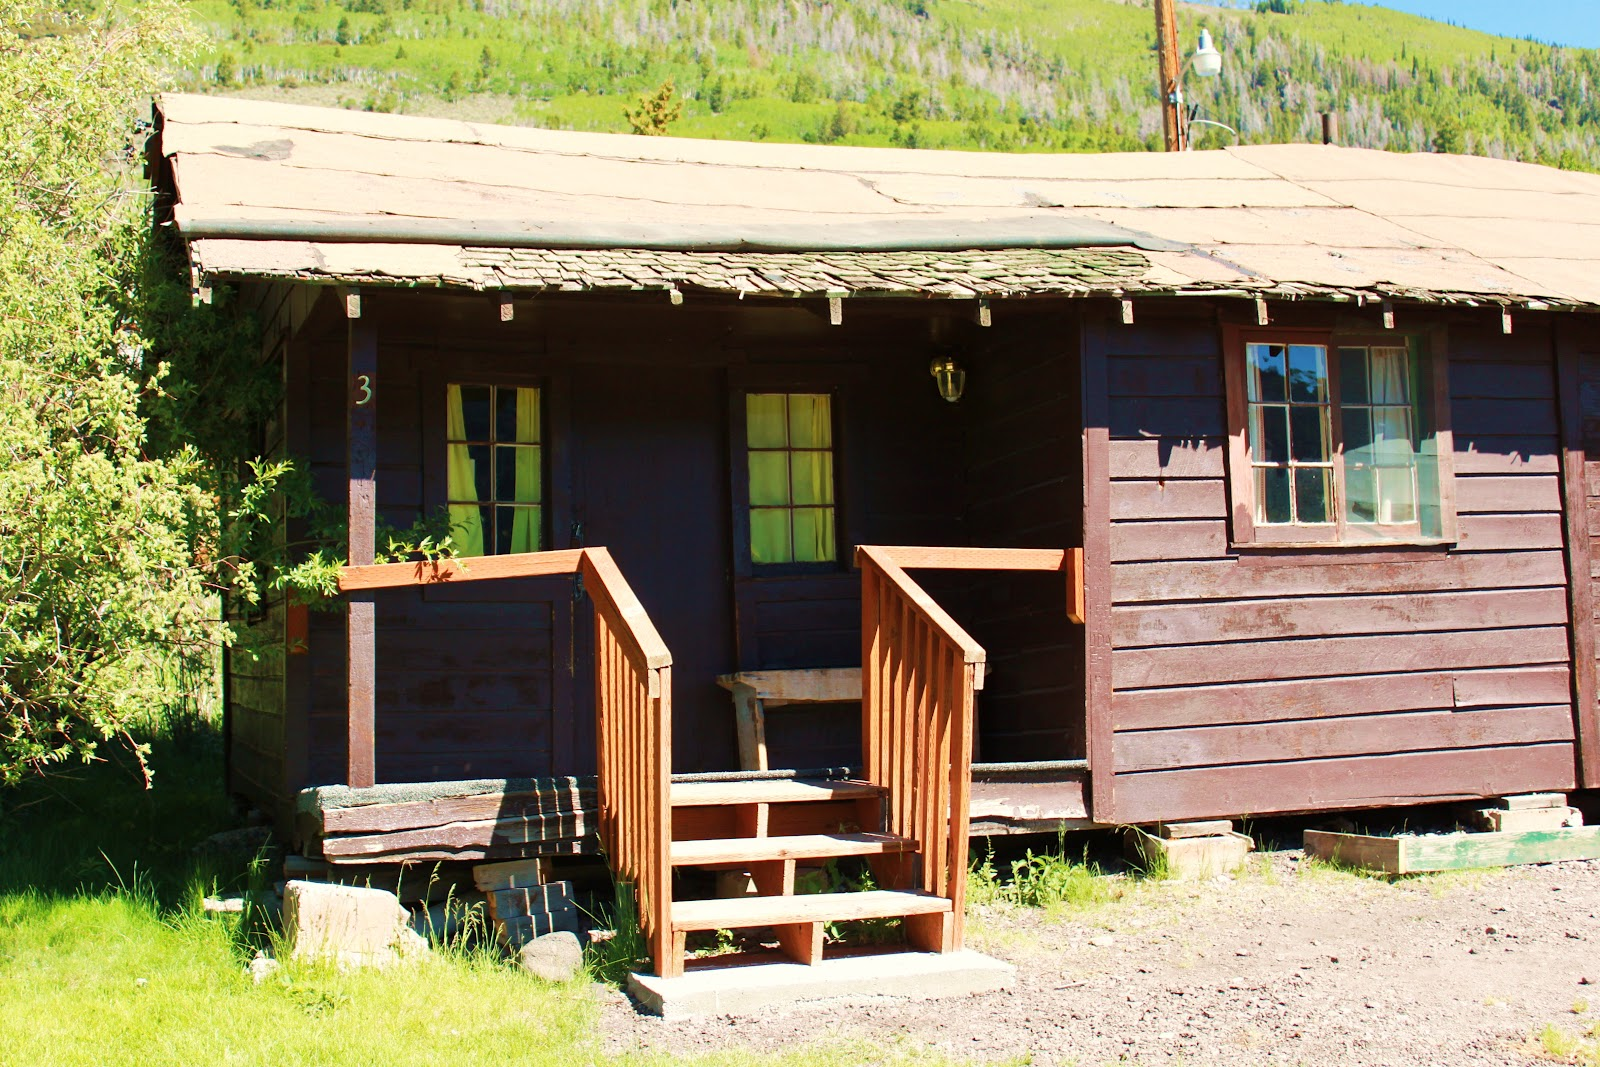 Rental cabins at fish lake utah rustic 6 person camping Campground cabin rentals